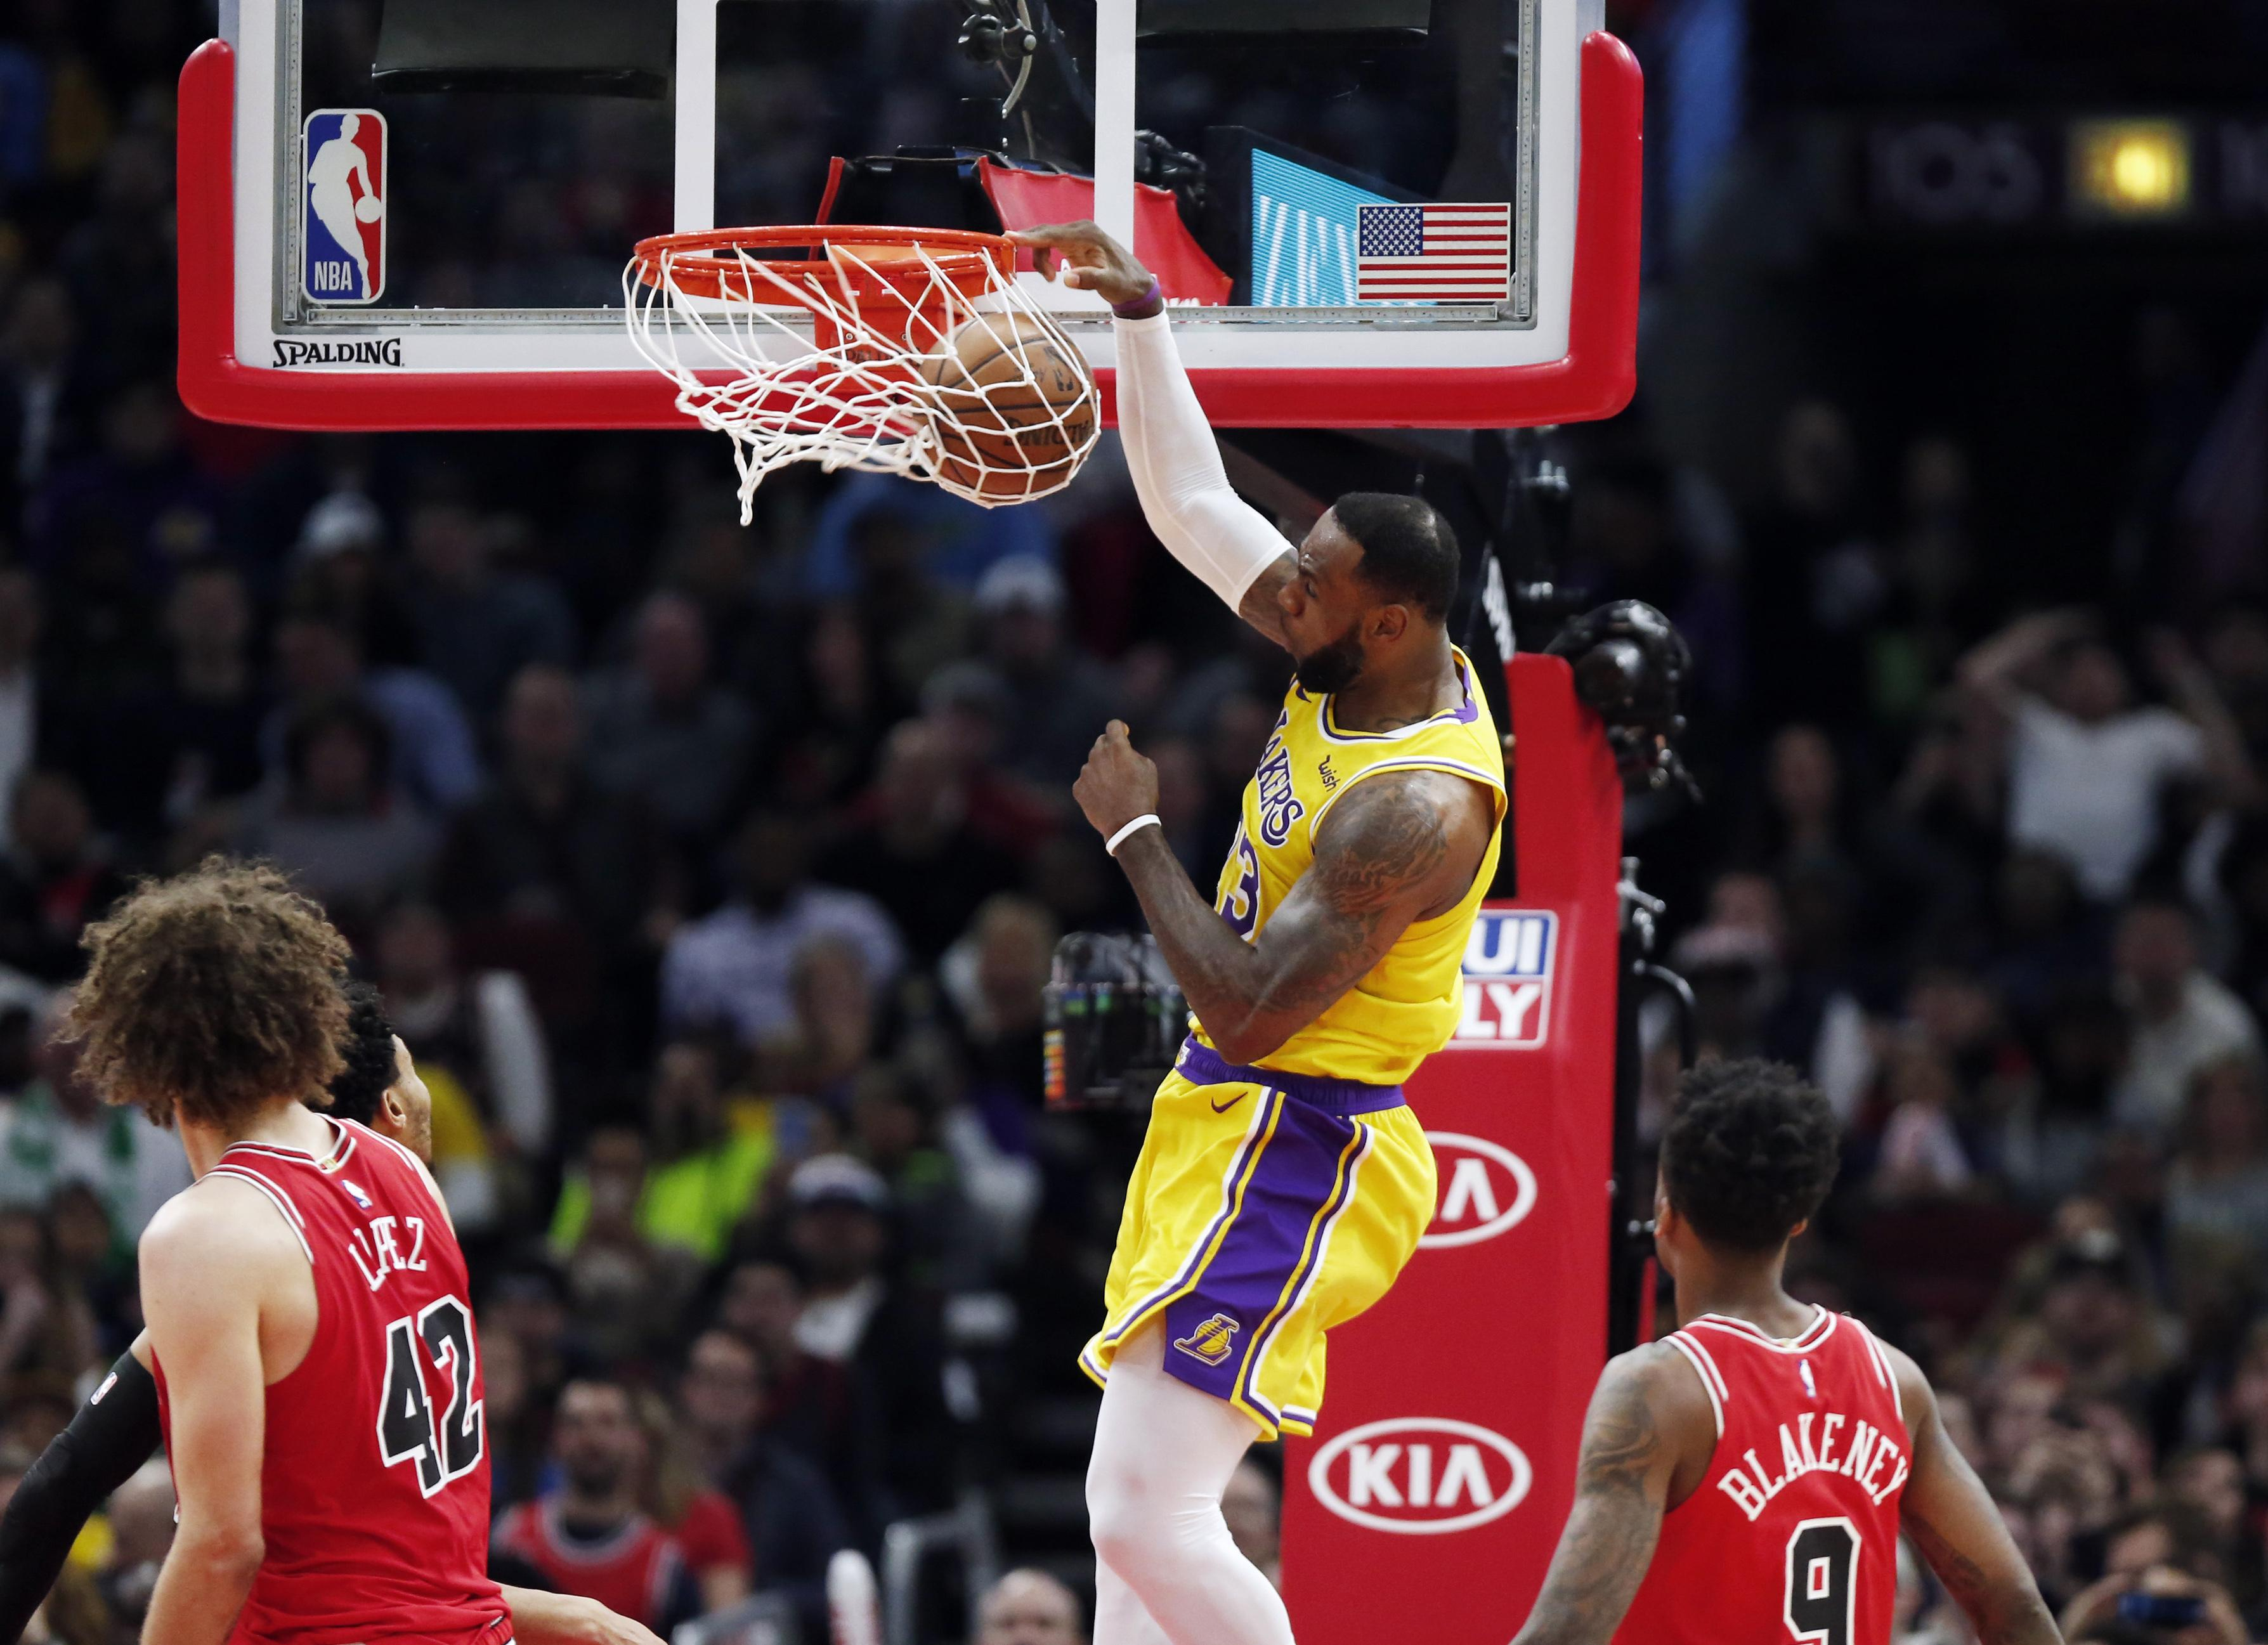 sale retailer 5a107 bee88 Los Angeles Lakers forward LeBron James (23) dunks in front of Chicago  Bulls guard